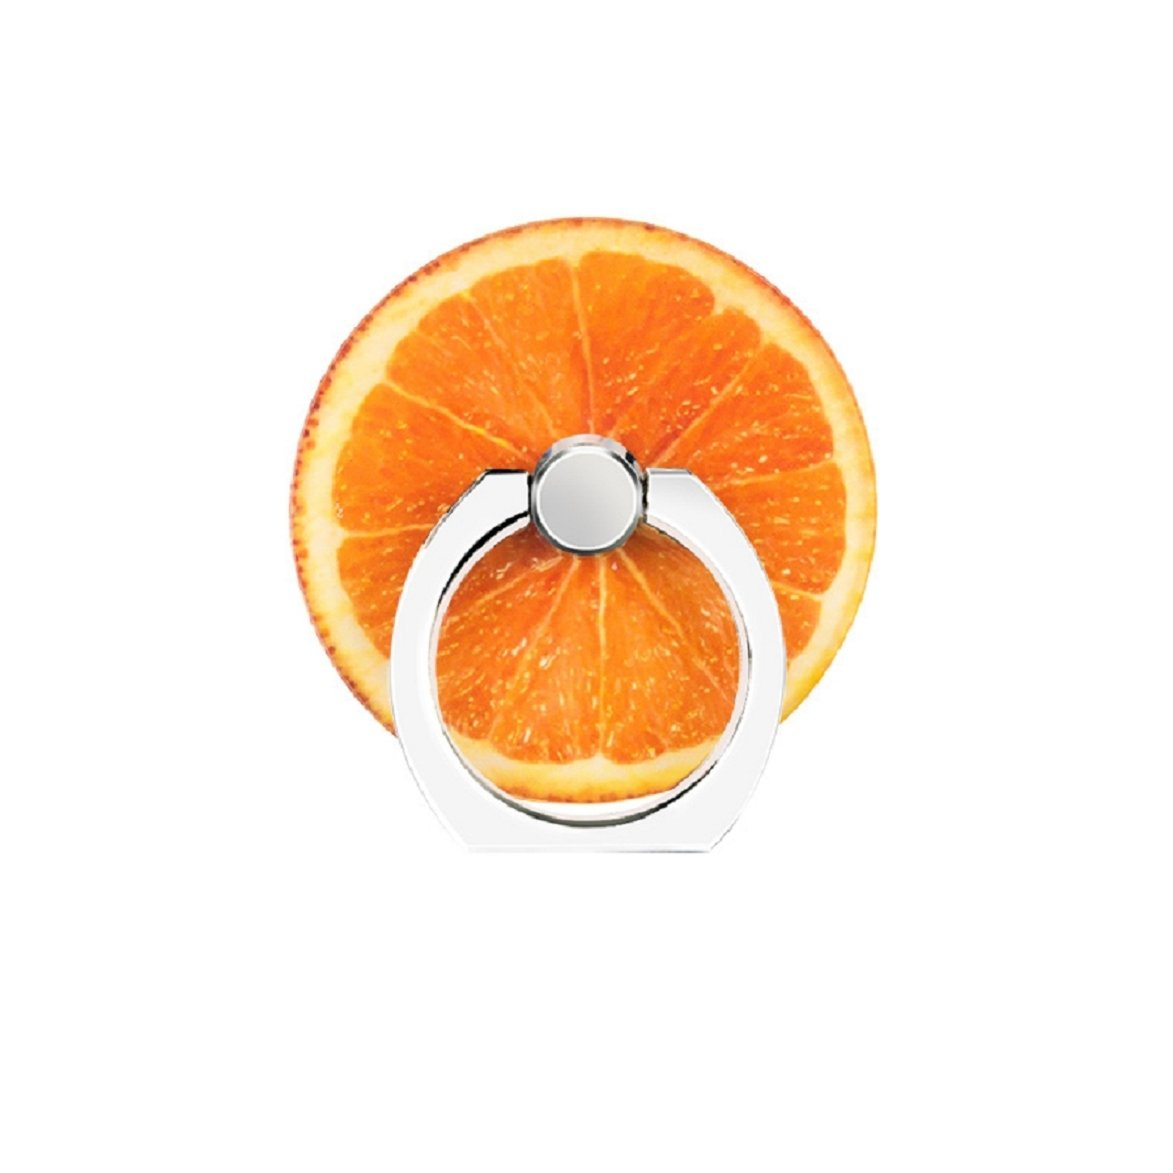 Color 1 Ayiqi Cell Phone Holder Universal Rotation Summer Fruit Phone Grip kickstand Smartphone Cell Phone Ring Holder for All Cell Phones iPad